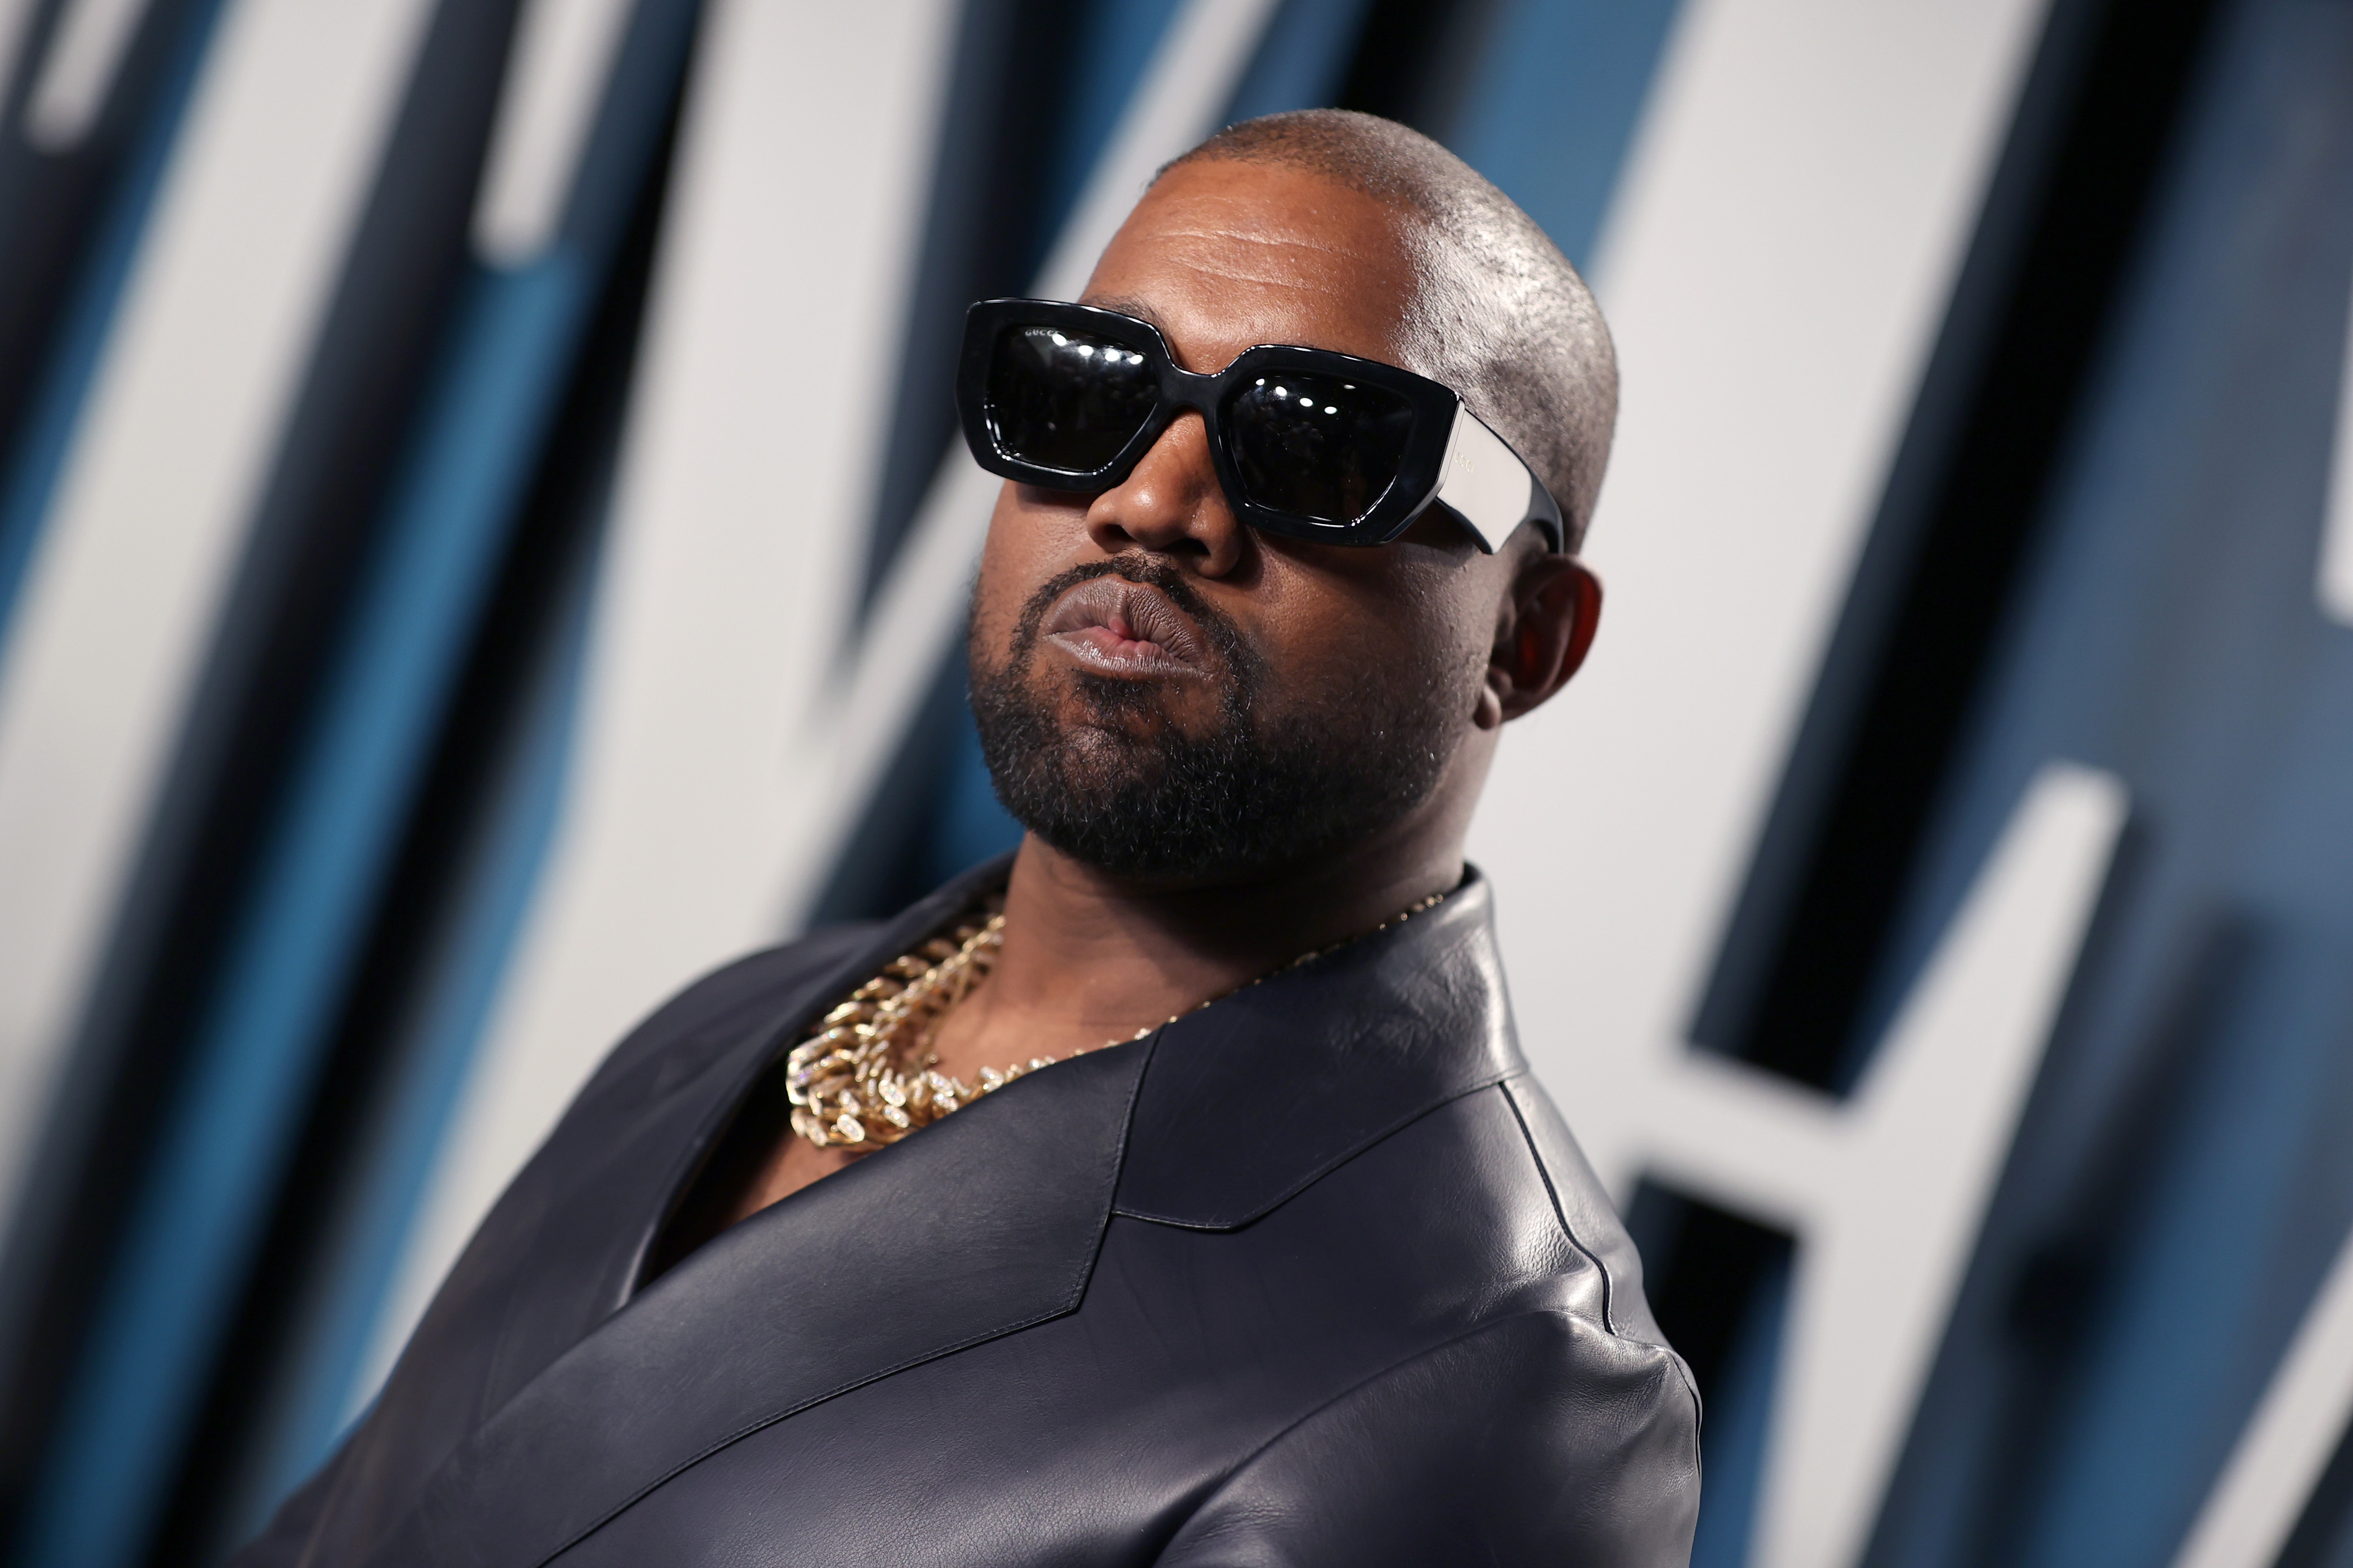 Kanye West seemingly urinates on Grammy award in rant calling the music industry modern day slavery